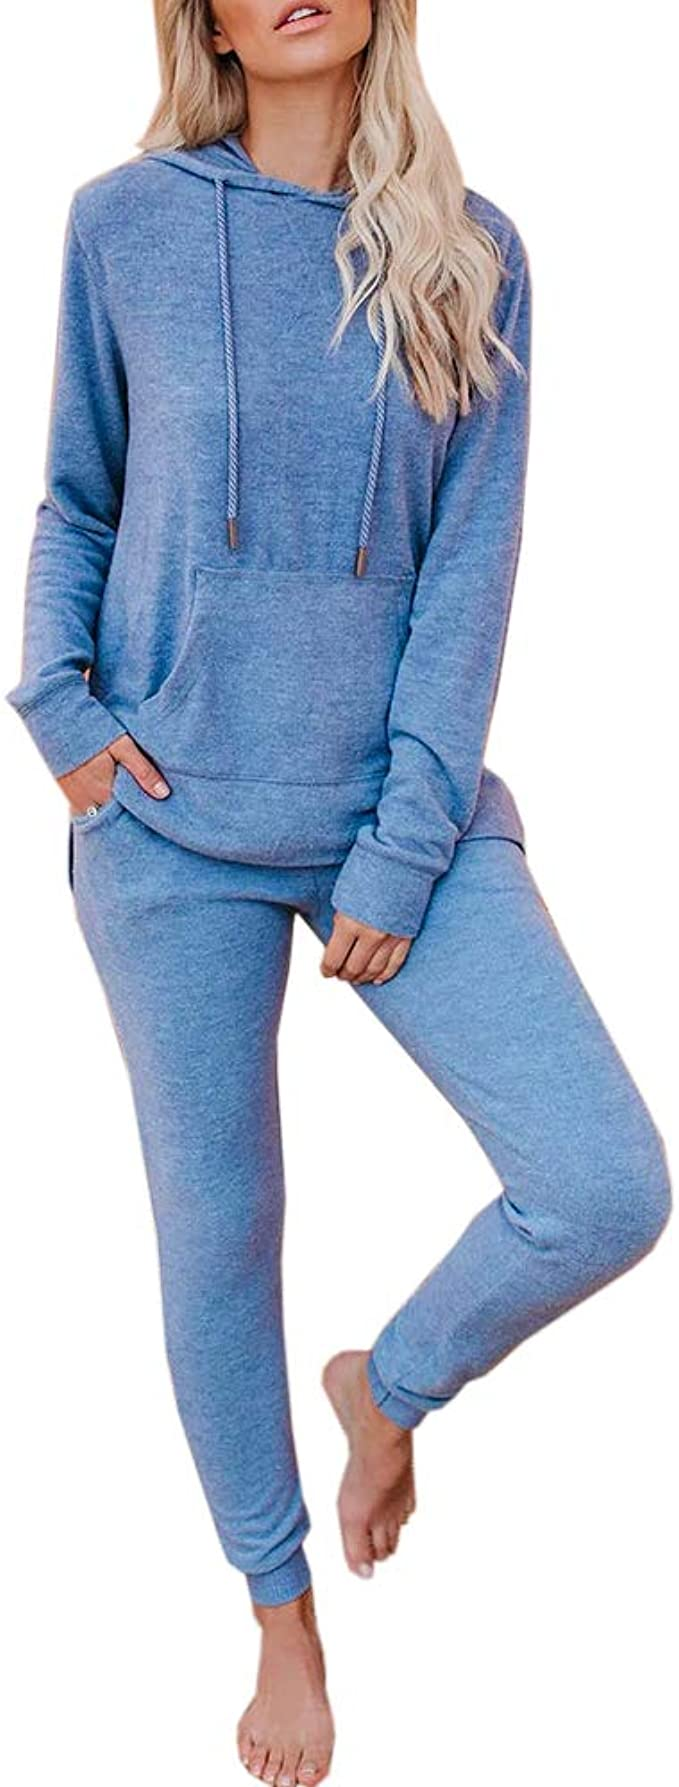 Women Sweat Suits Long Sleeve Hooded Sweatshirt and Sweatpants 2 Piece Sports Workout Sets Tracksuit